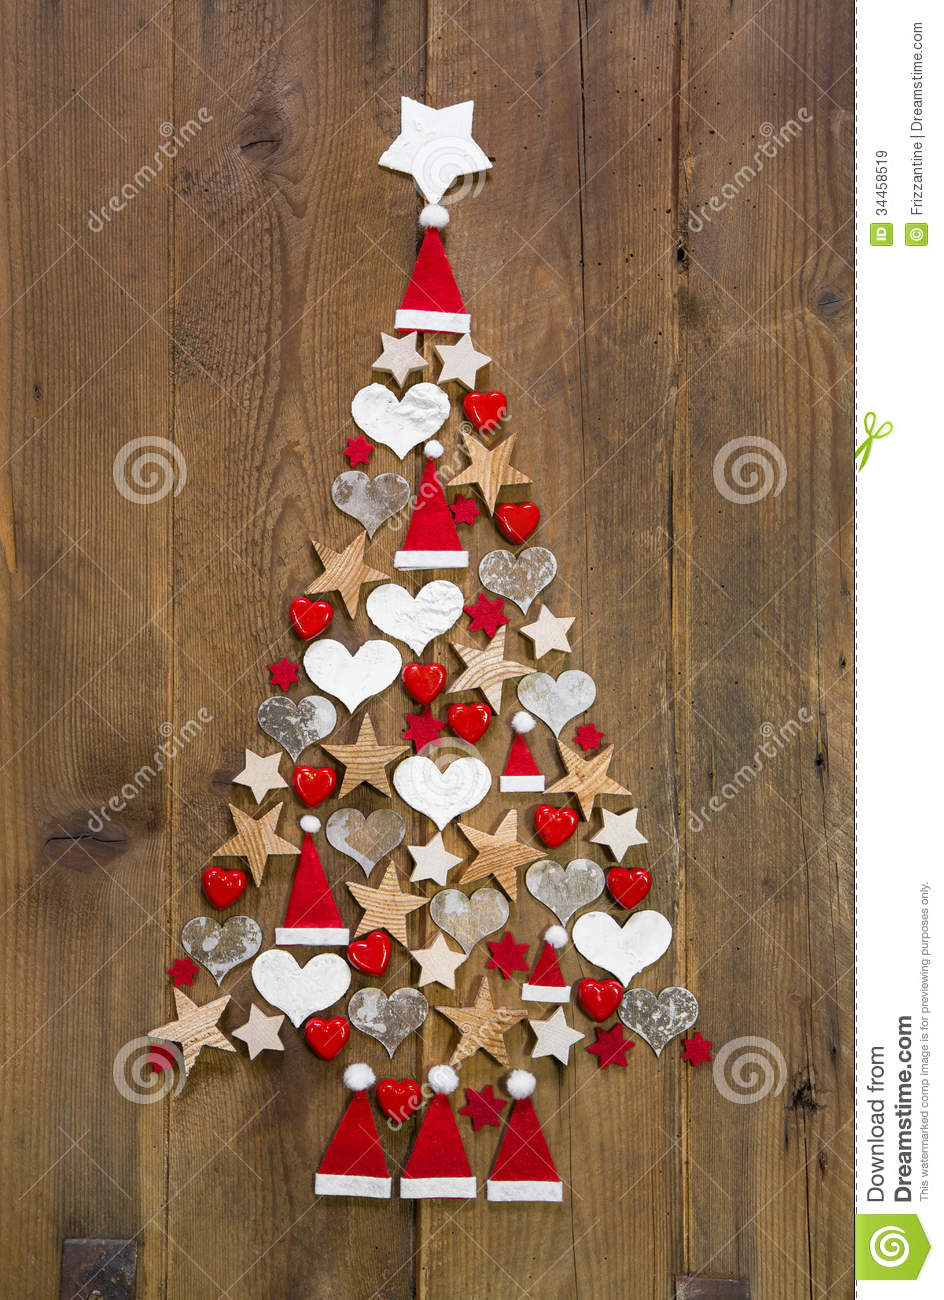 Christmas tree in red and white colour on a wooden background